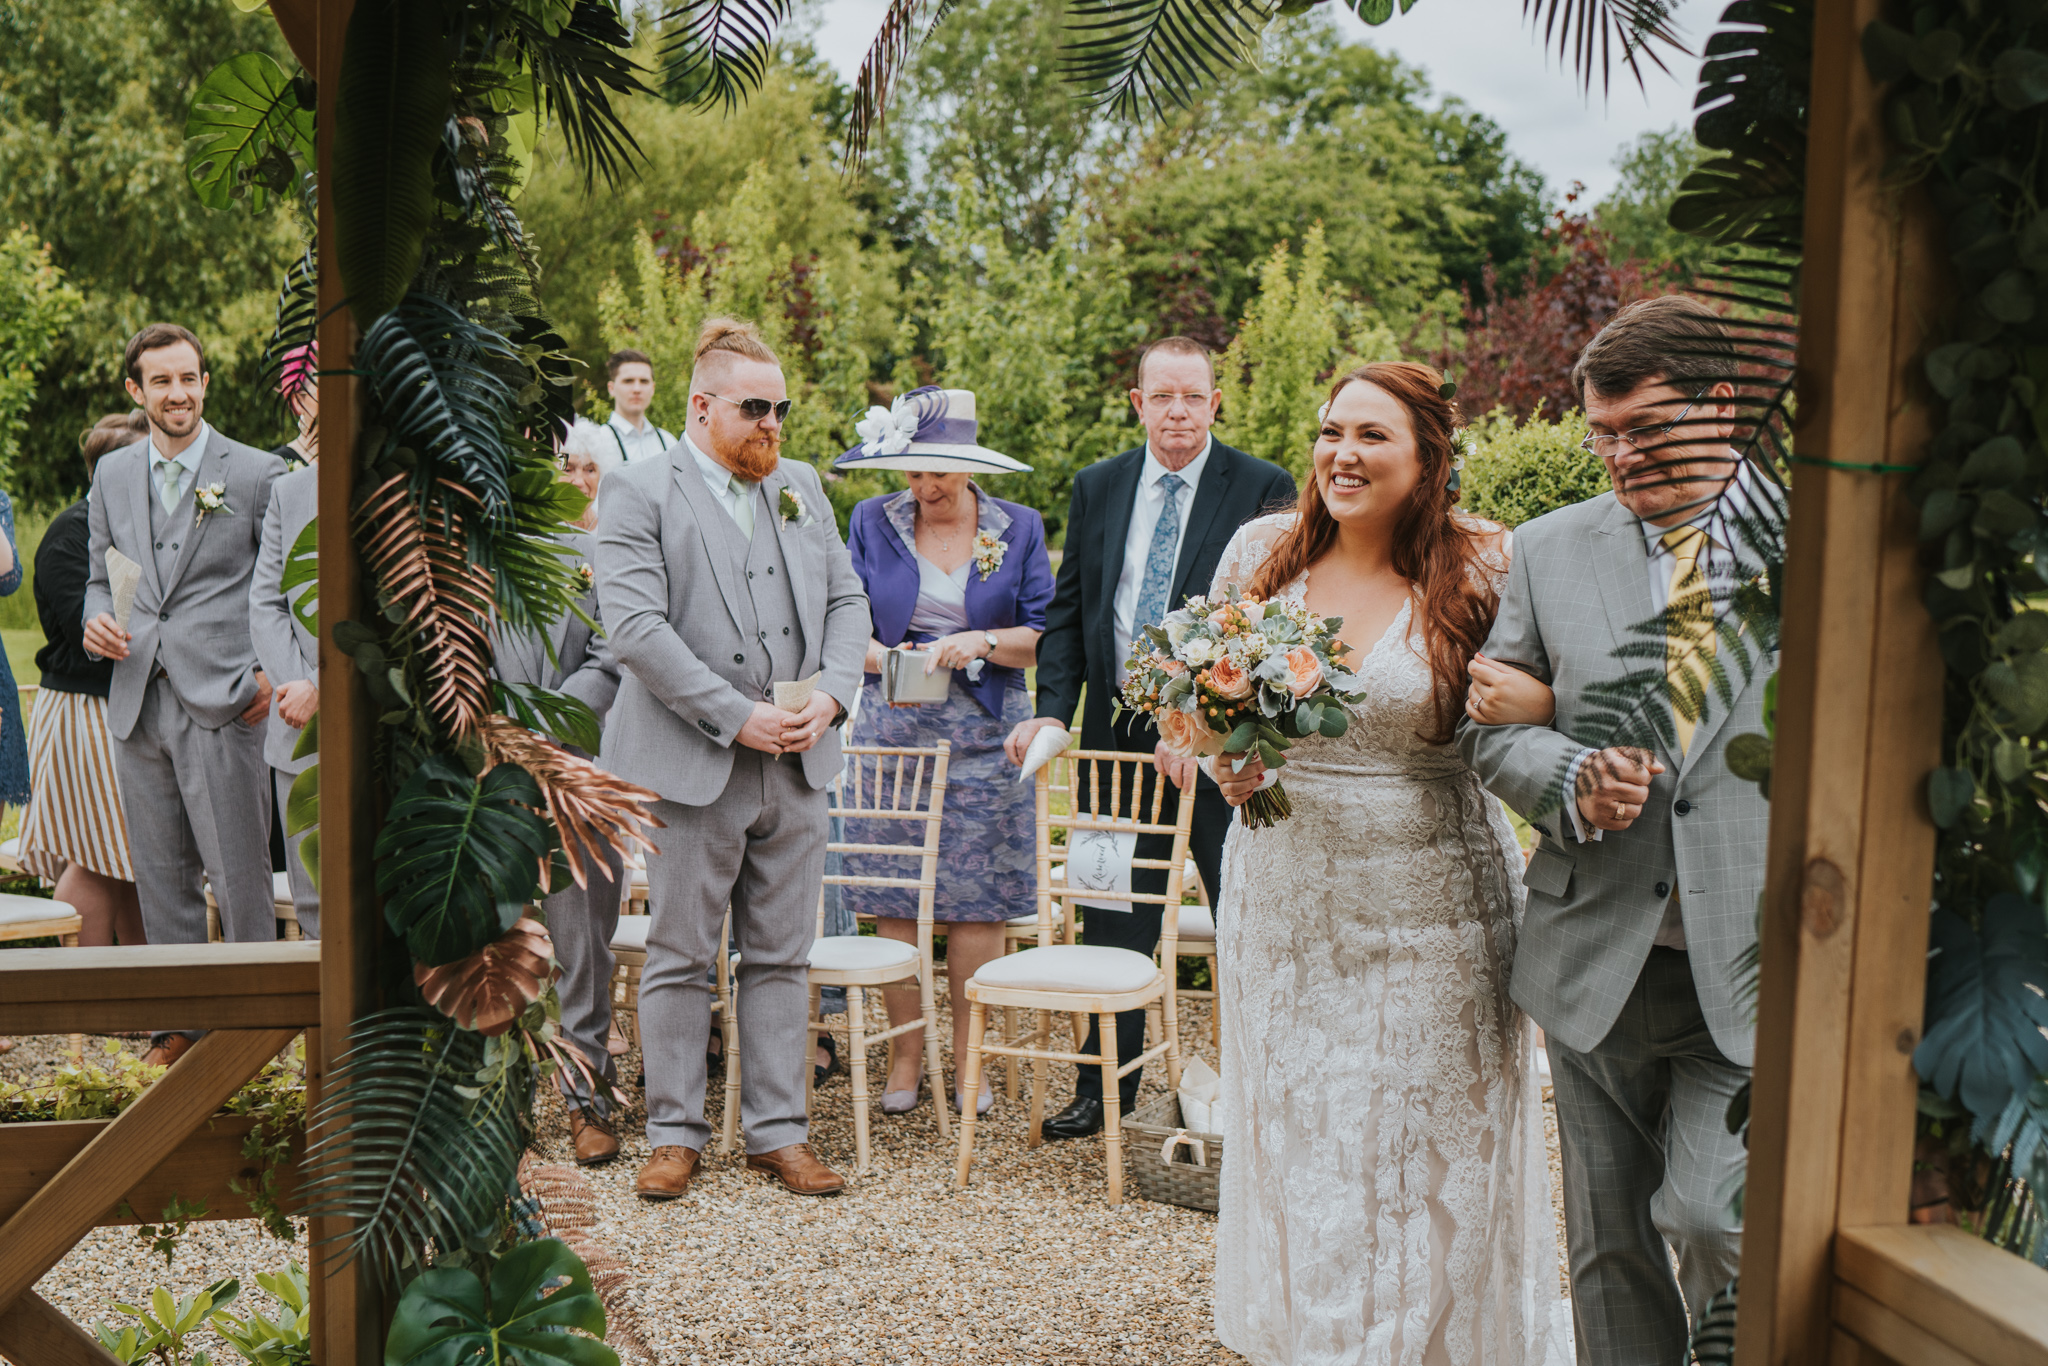 hayley-sam-secret-garden-kent-boho-wedding-grace-elizabeth-colchester-essex-alternative-wedding-photographer-essex-suffolk-norfolk-devon (9 of 36).jpg